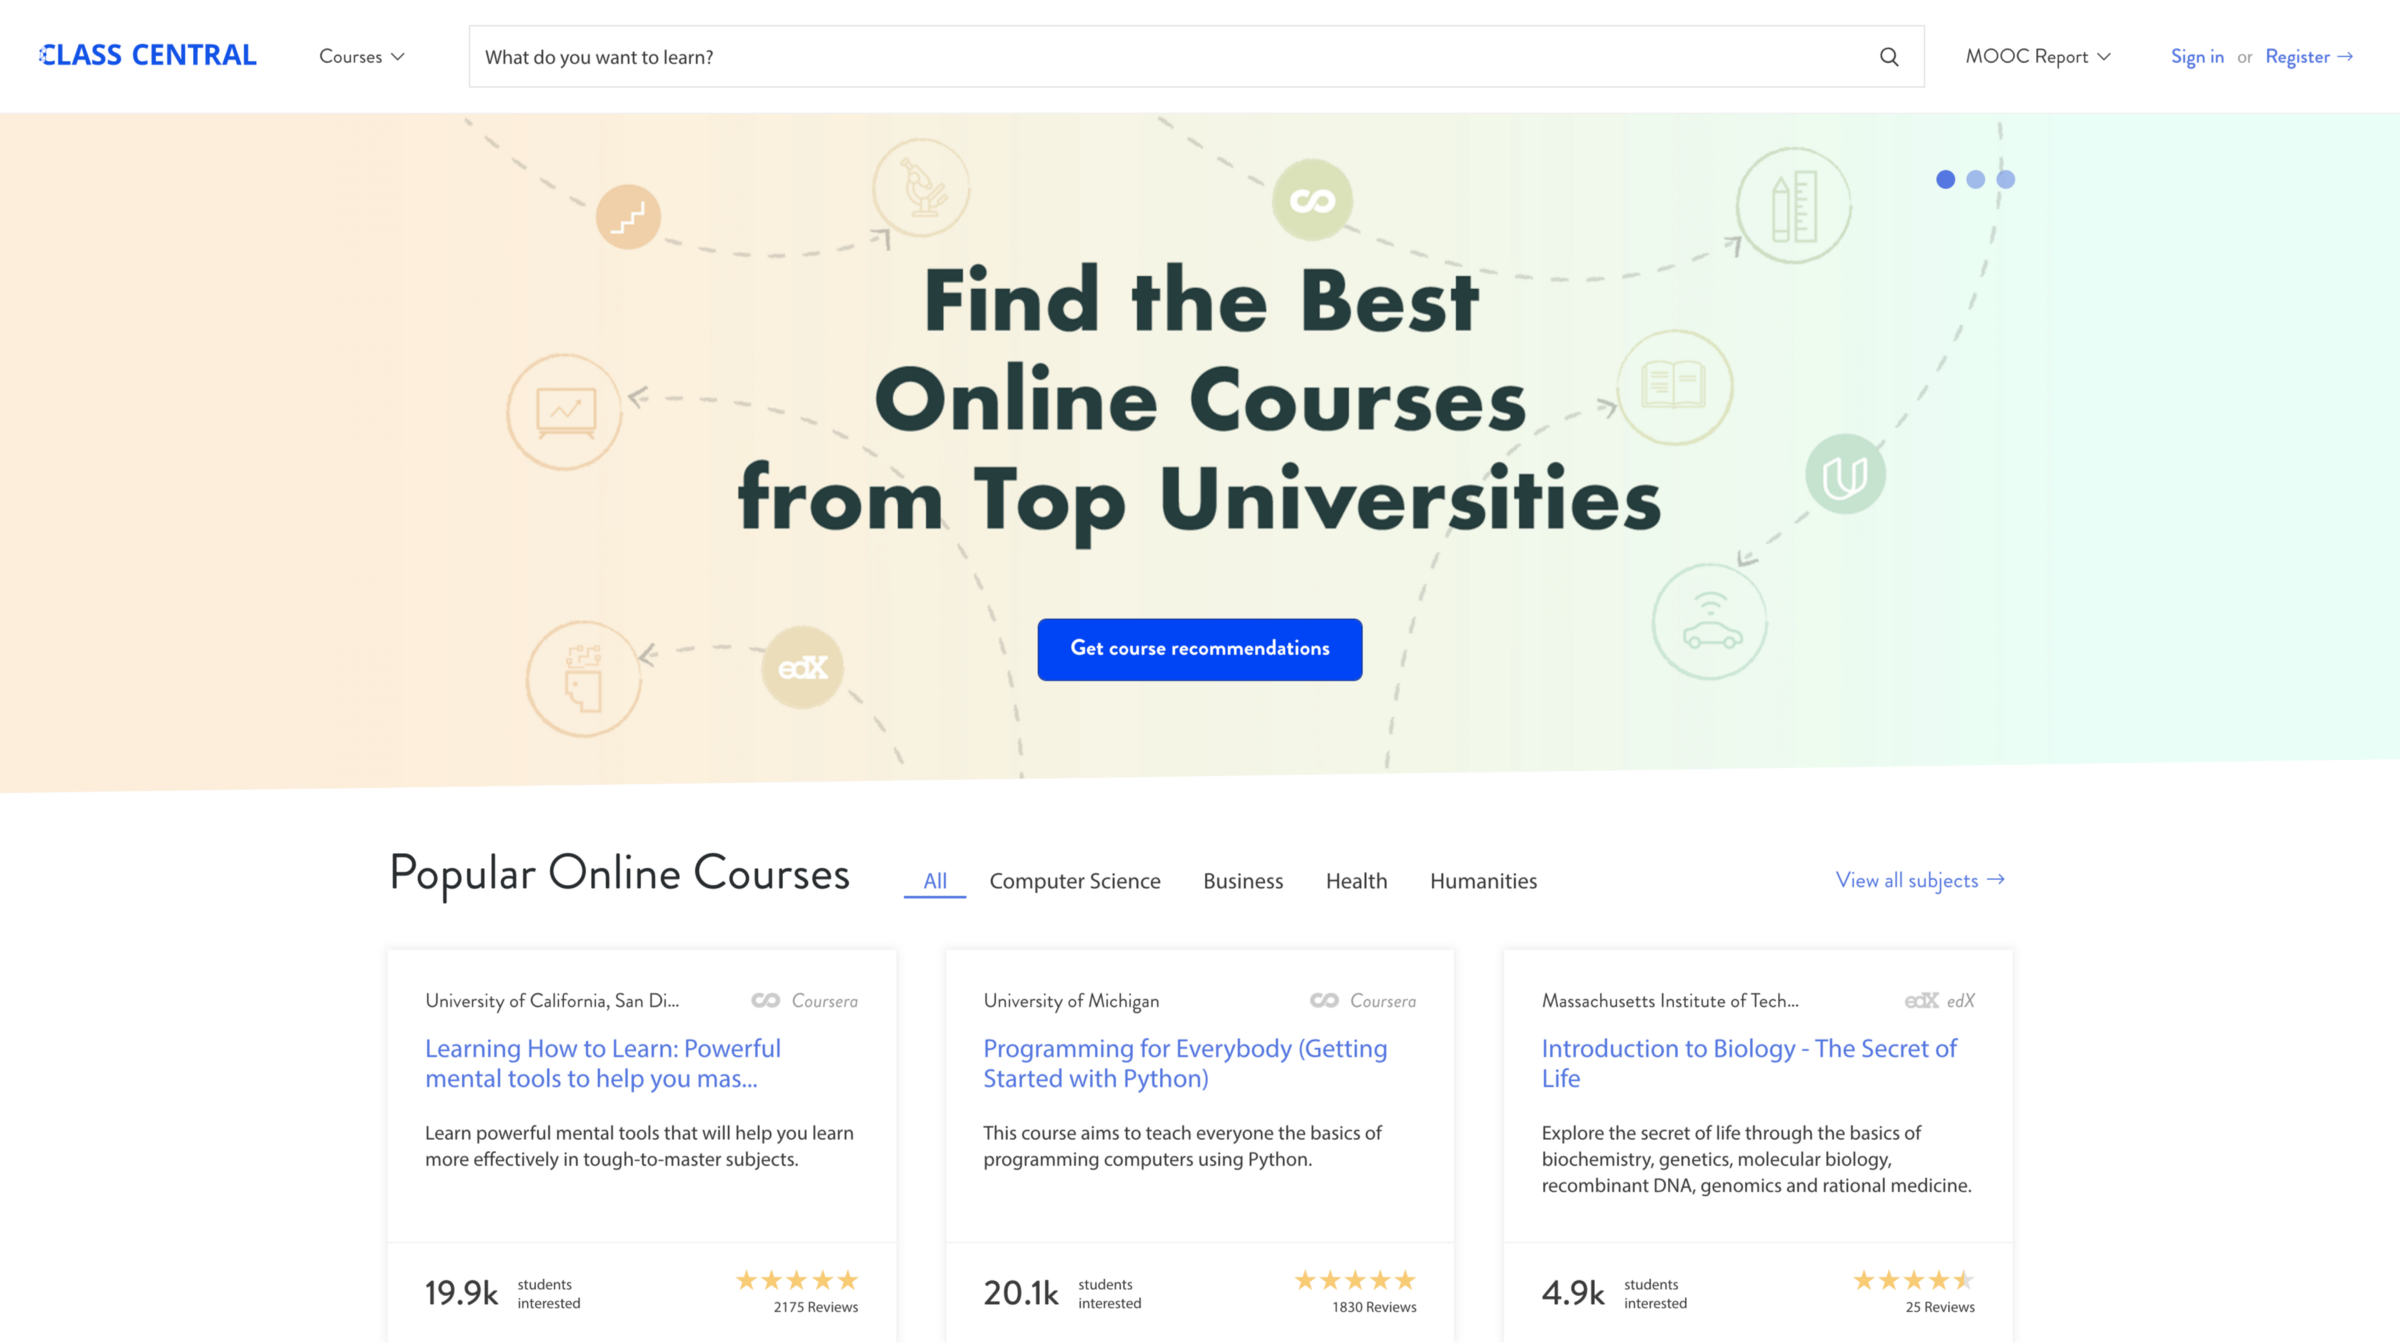 190 universities just launched 600 free online courses. Here's the full list.